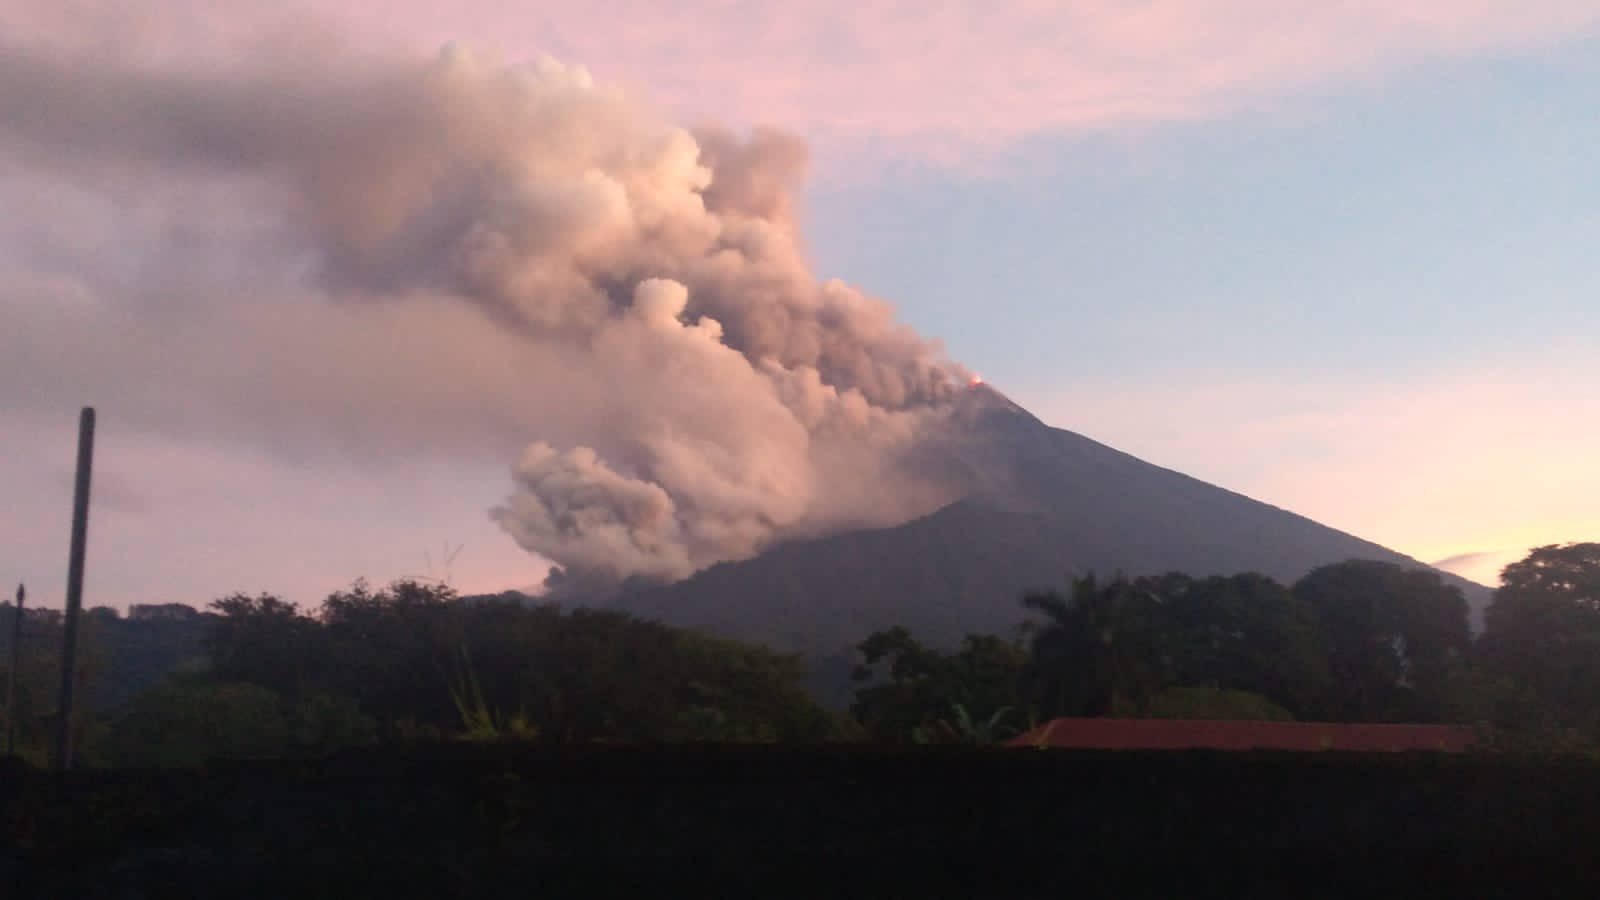 Phoenix clouds followed by the pyroclastic flow at Fuego volcano today (image: @William_Chigna/twitter)